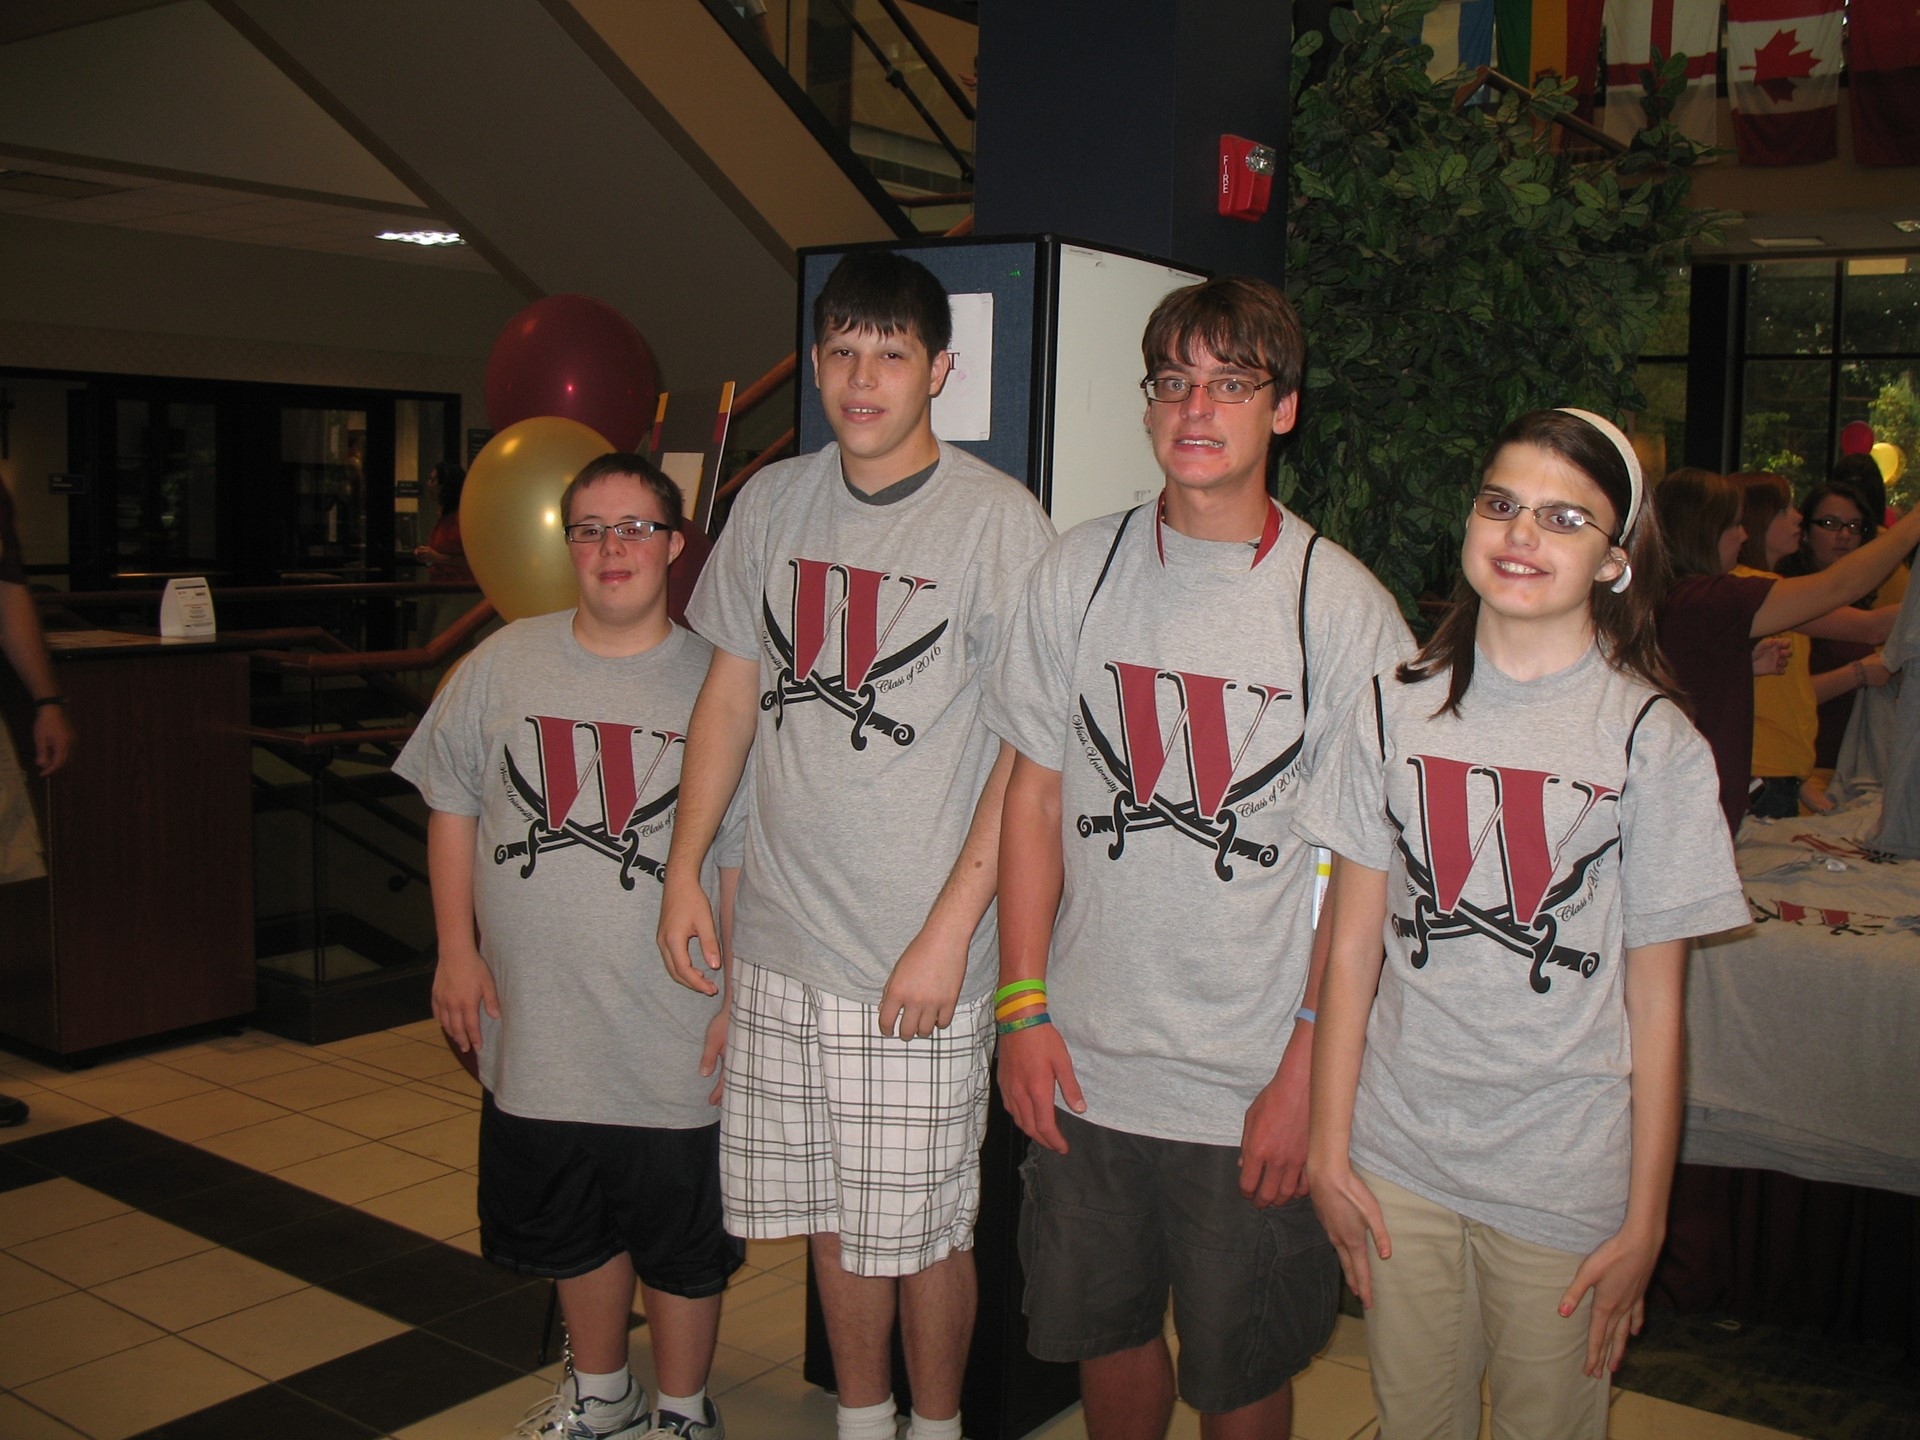 Four Transition U Students in Walsh T-shirts